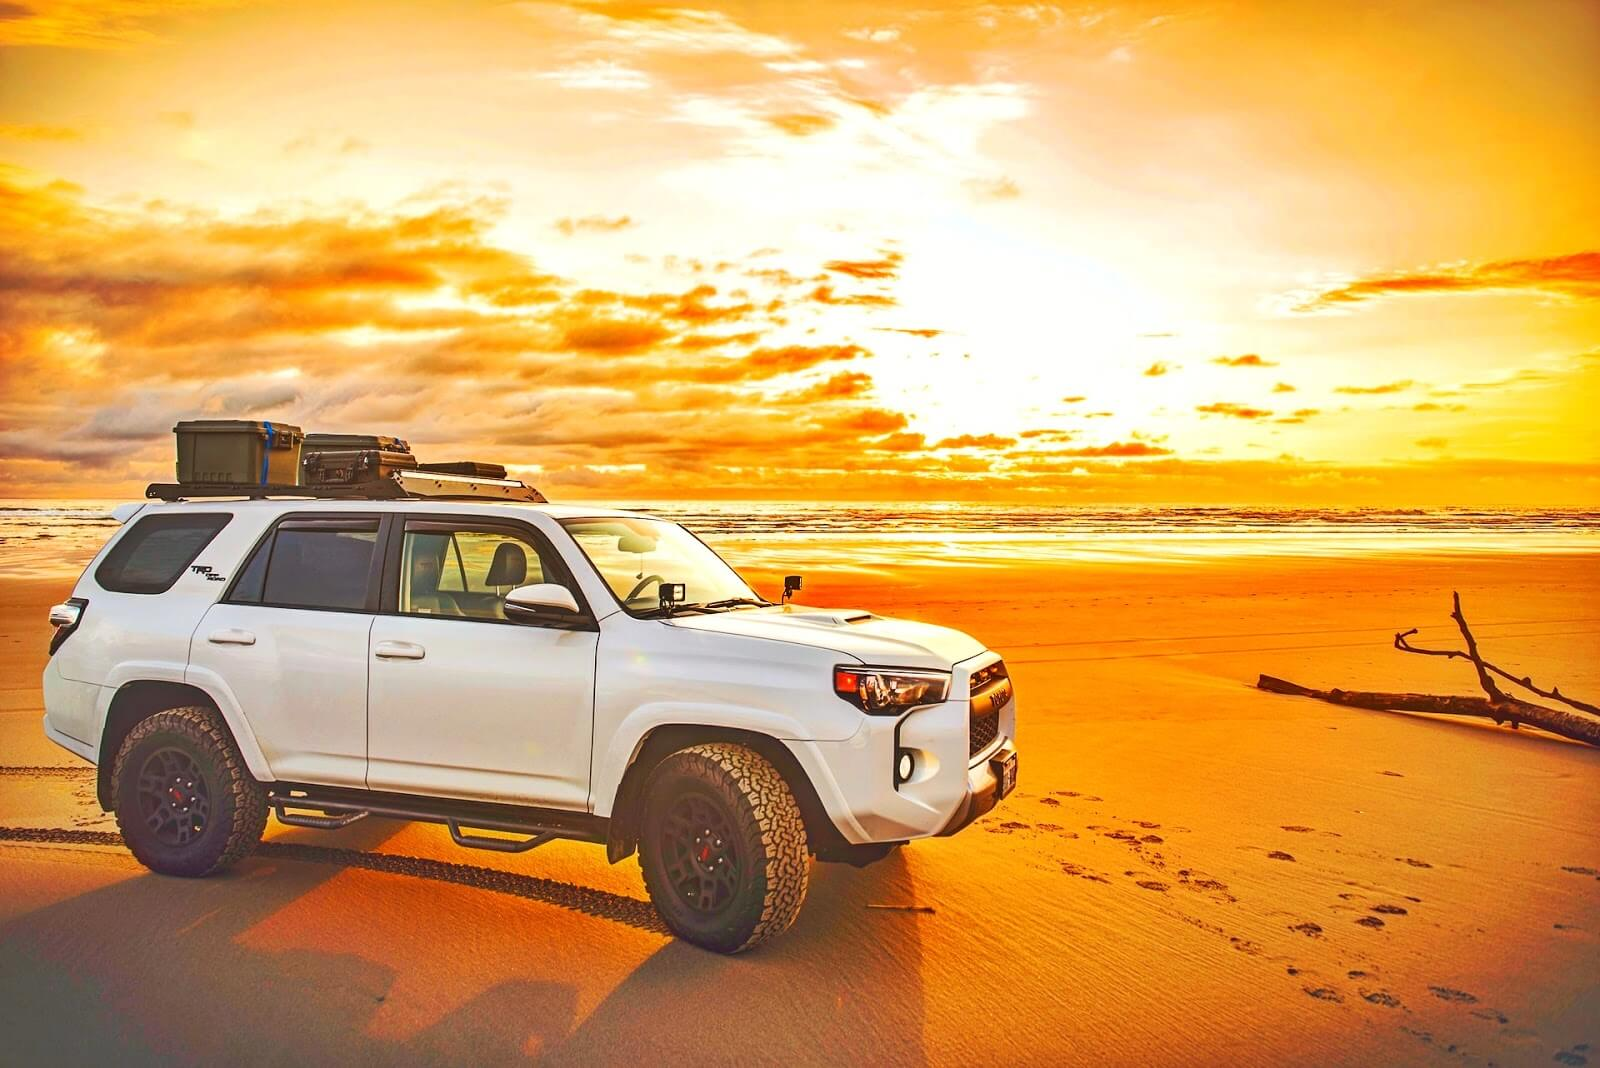 Can you drive 2WD vehicle in sand? | 2WD sand off-roading guide